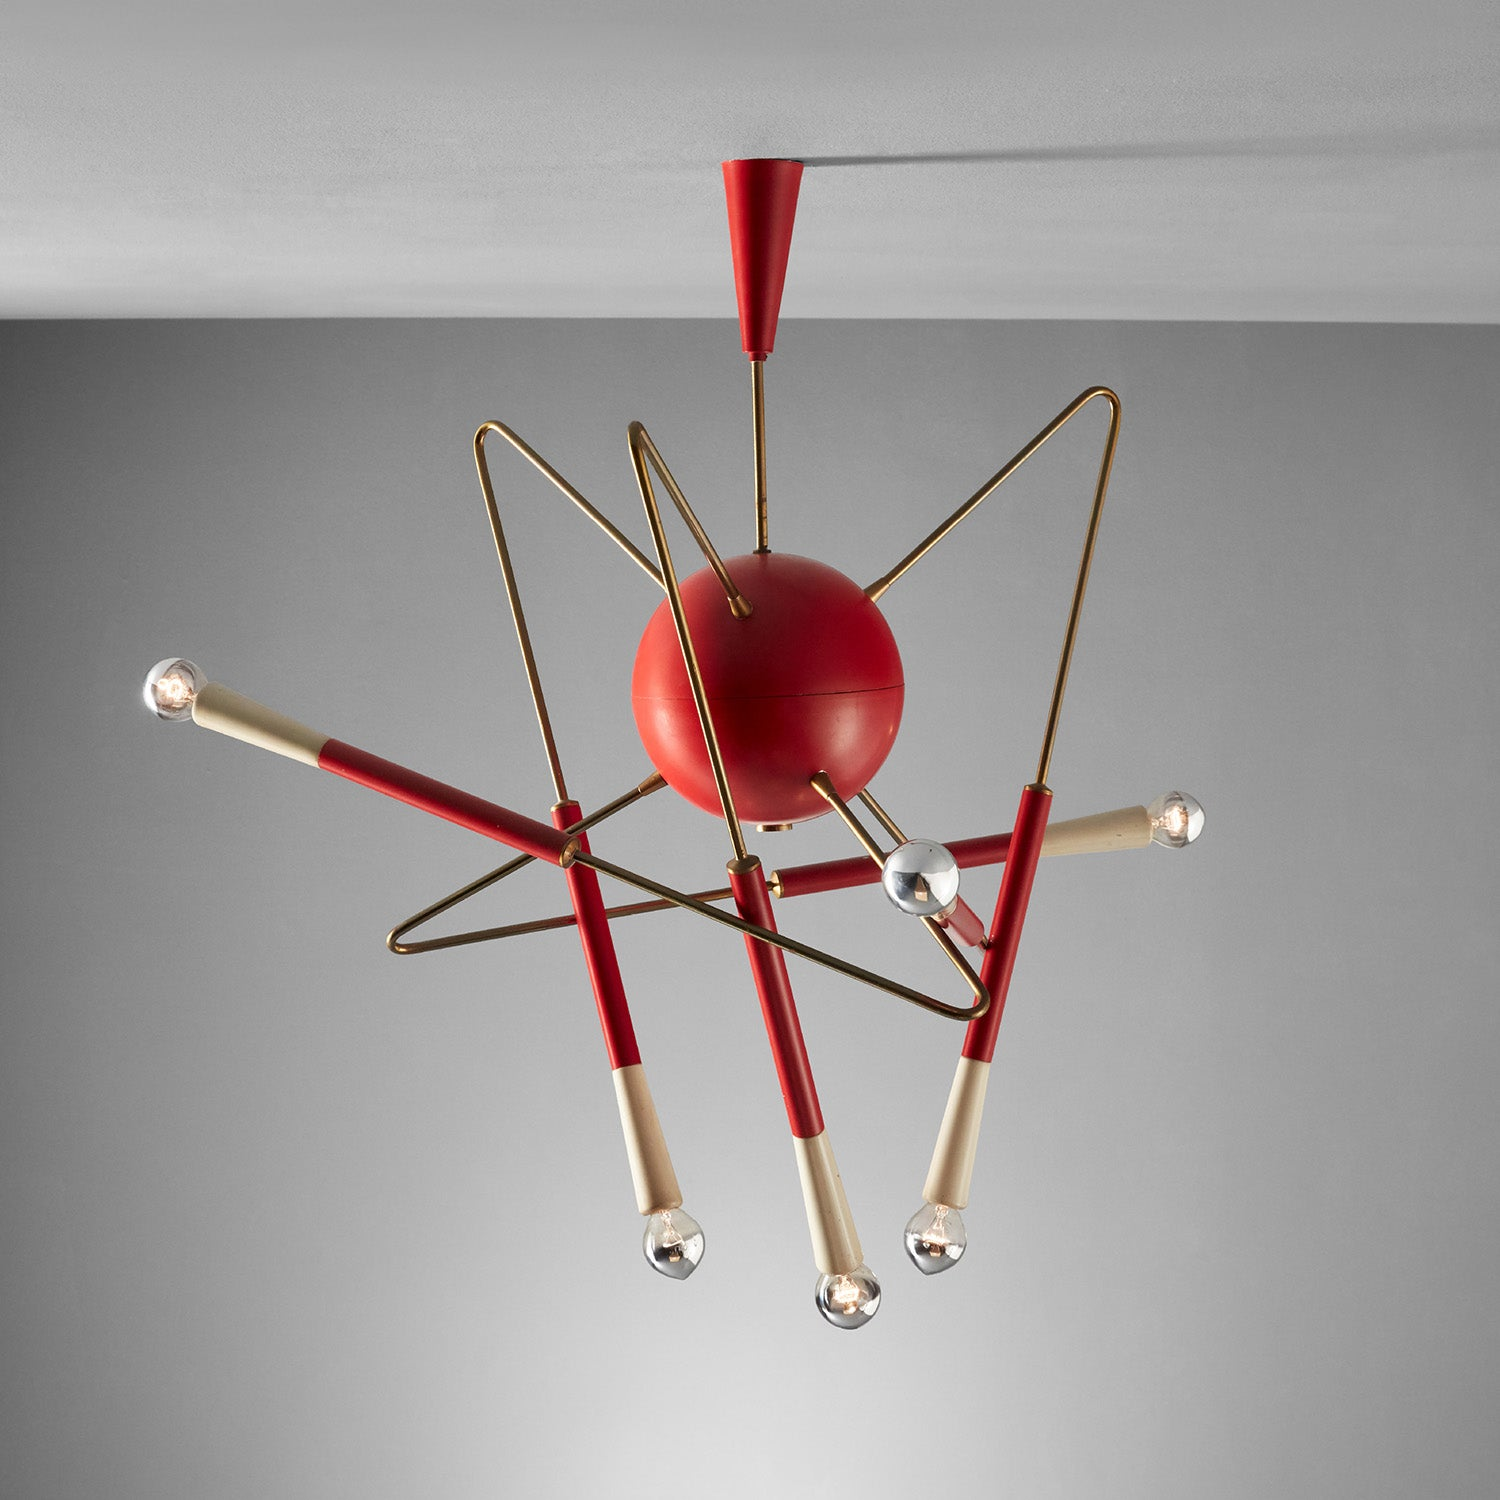 Ceiling Light by Stilnovo sold at Phillips New York in July for $25,000. Photo © Phillips